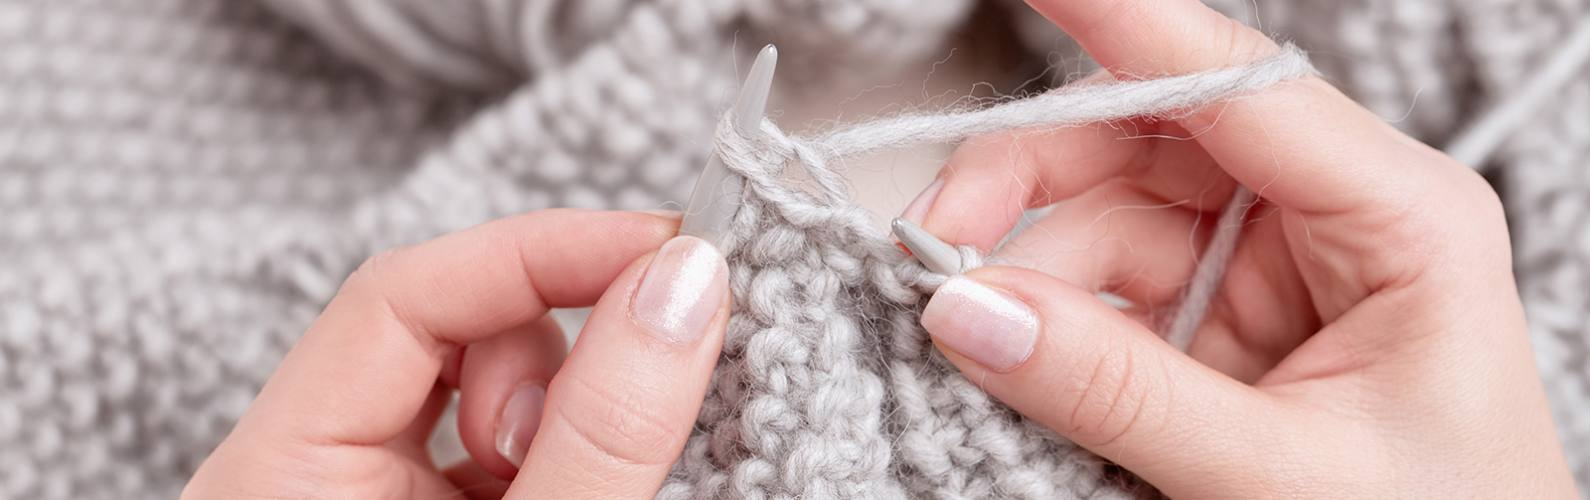 It's hip to knit! 7 simple knitting projects